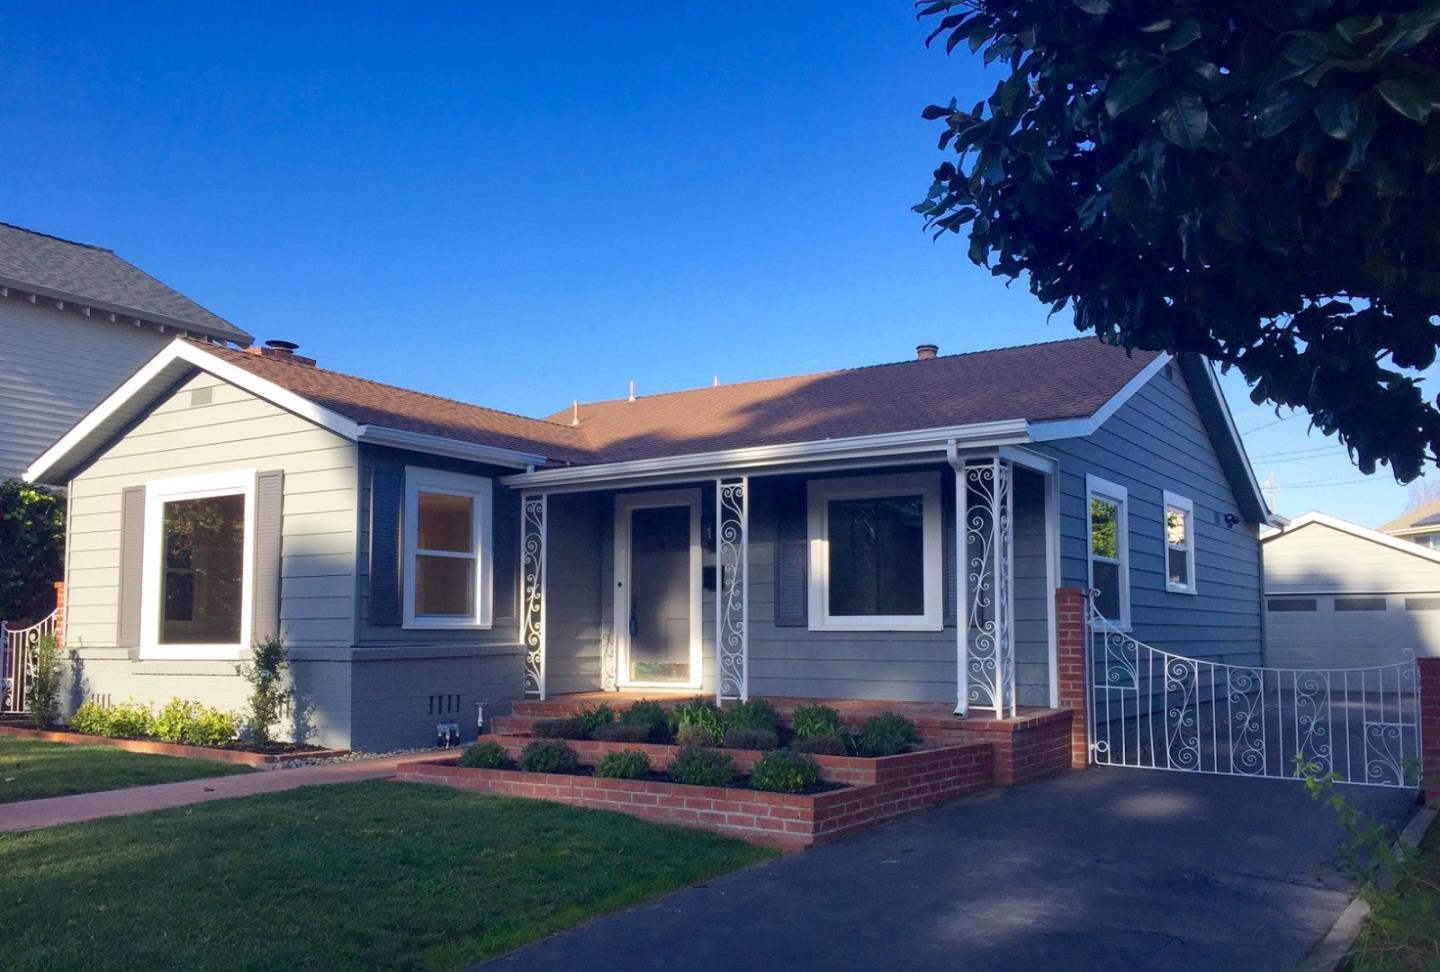 This 1938 Watsonville classic is in one of the city's best neighborhoods. This home has retained much of it's original touch with many fresh upgrades. The old world charm includes hardwood floors, a brick fireplace and a formal dining room. The two car garage is detached and the outdoor patio and yard is private with space.